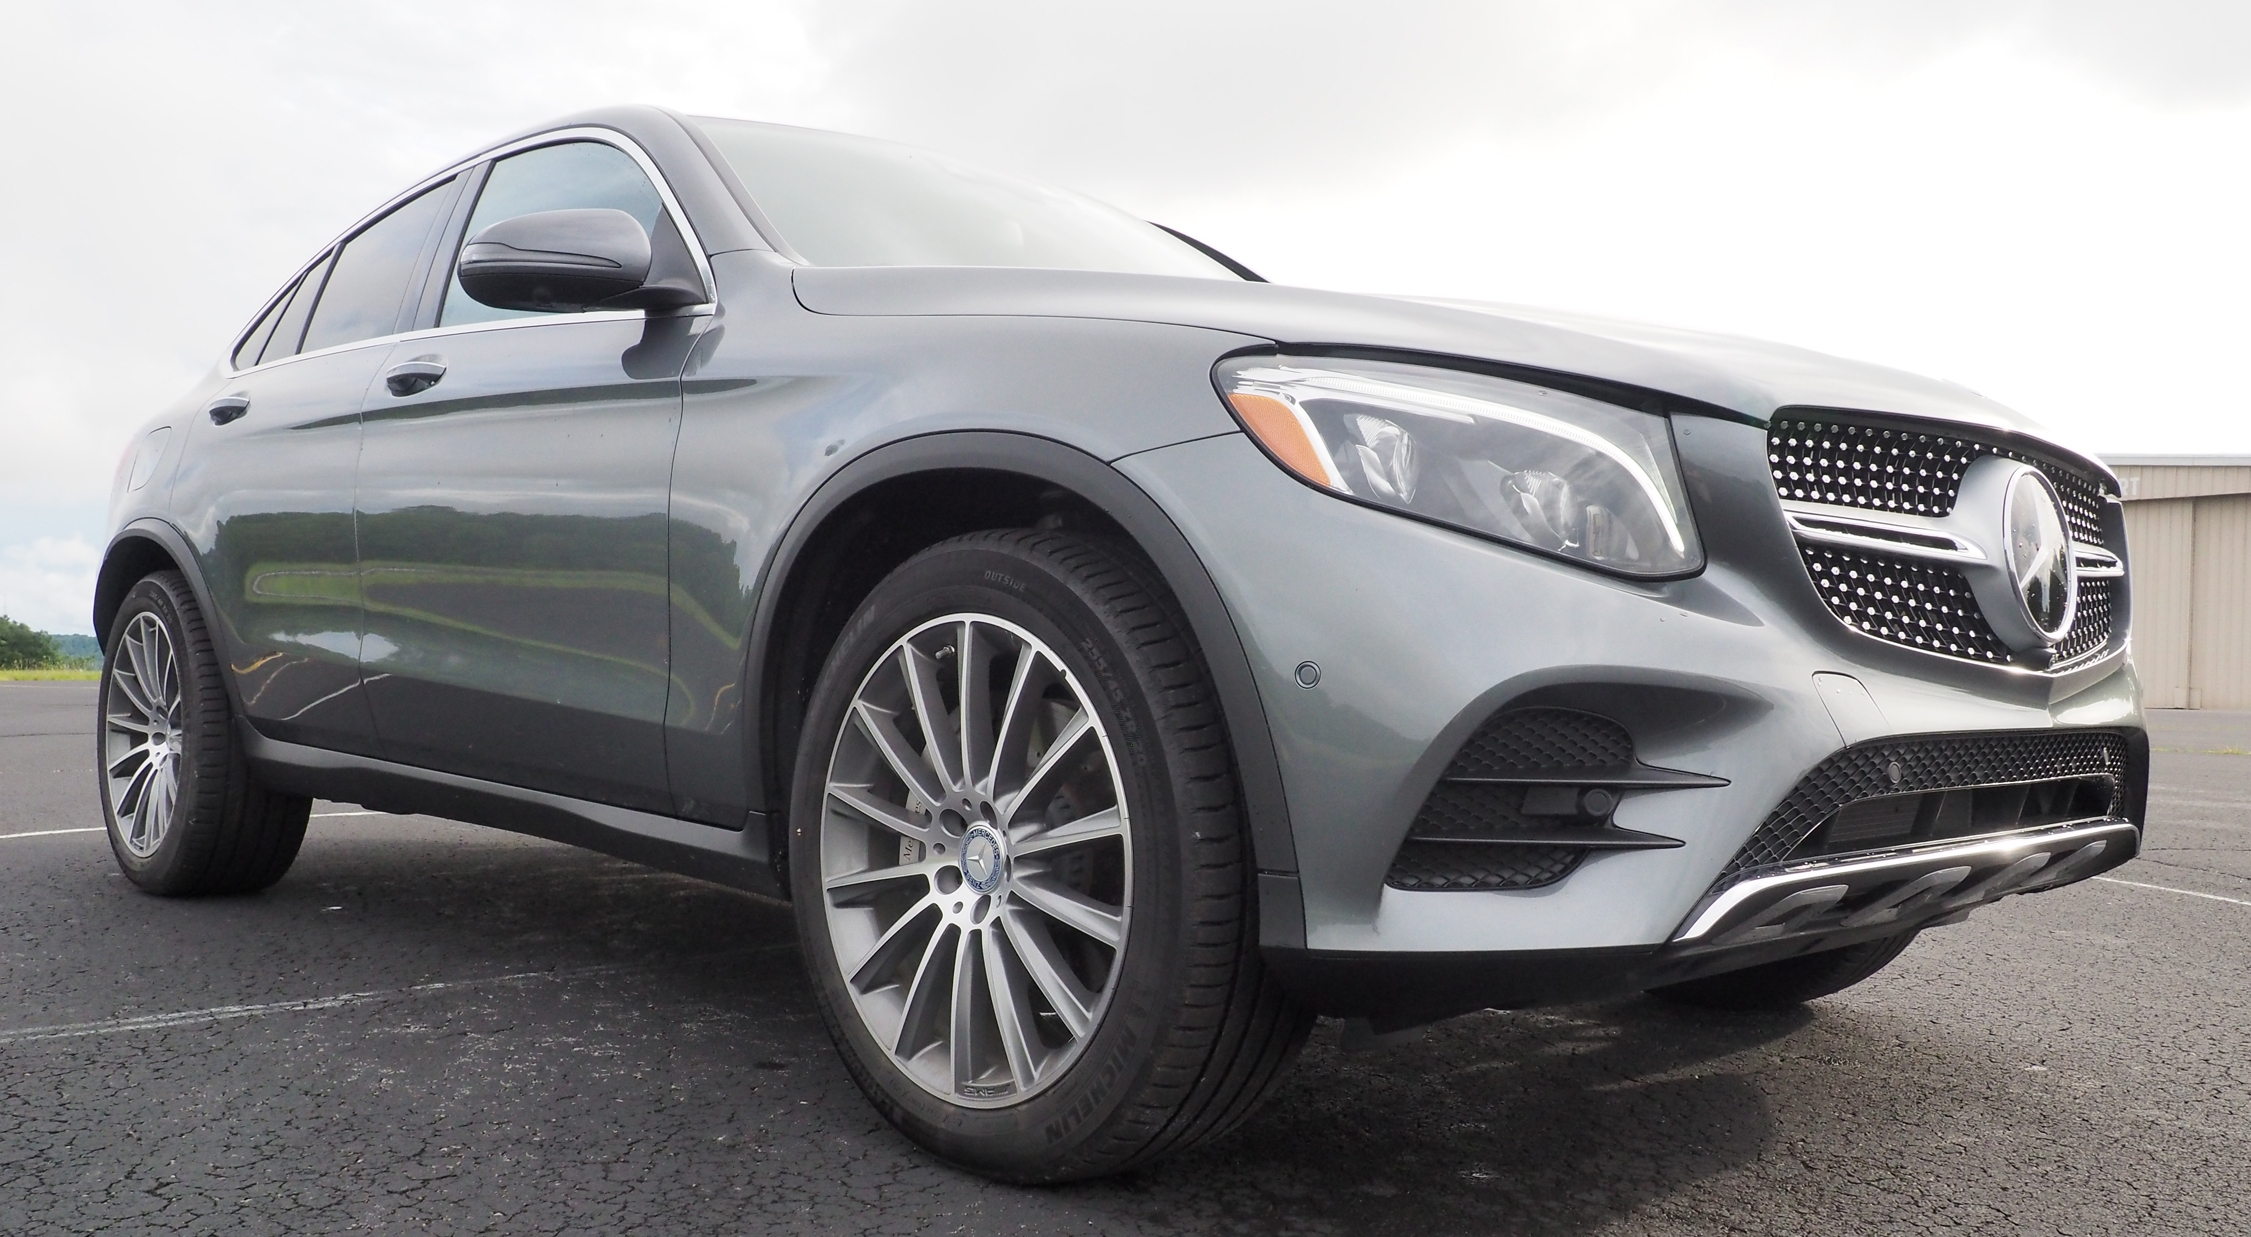 2017 mercedes benz glc 300 coupe driven review top speed for Mercedes benz glc 300 coupe